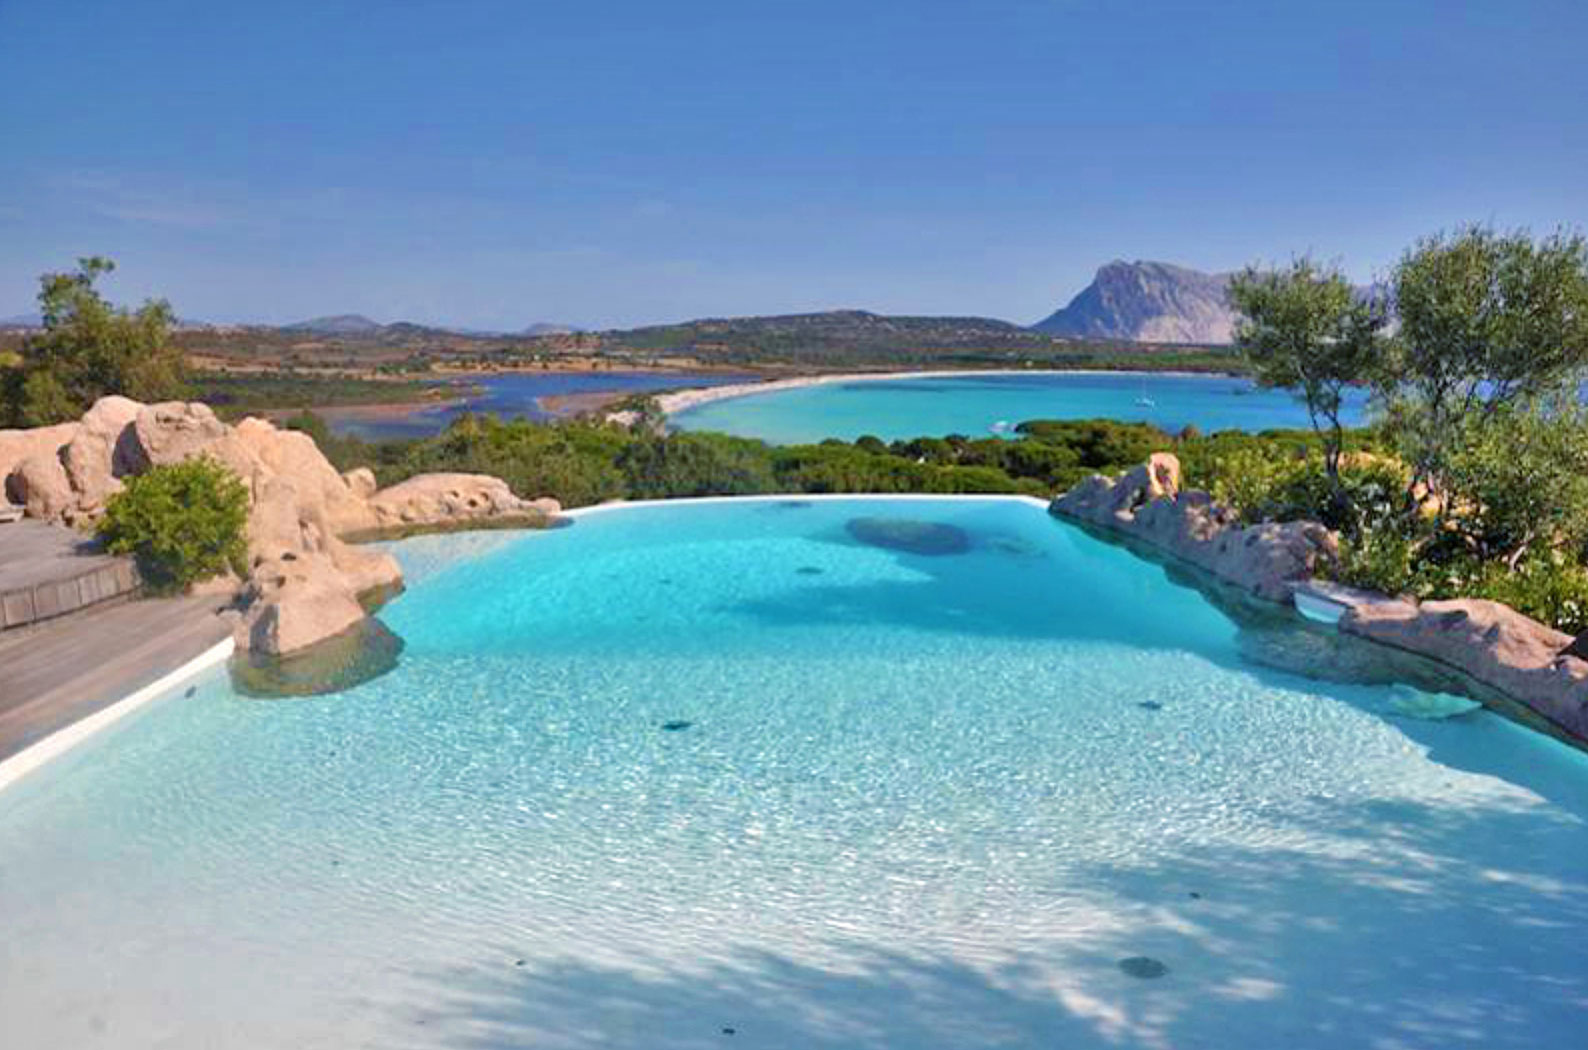 Pick a Pool, Any Pool Here In Sardinia